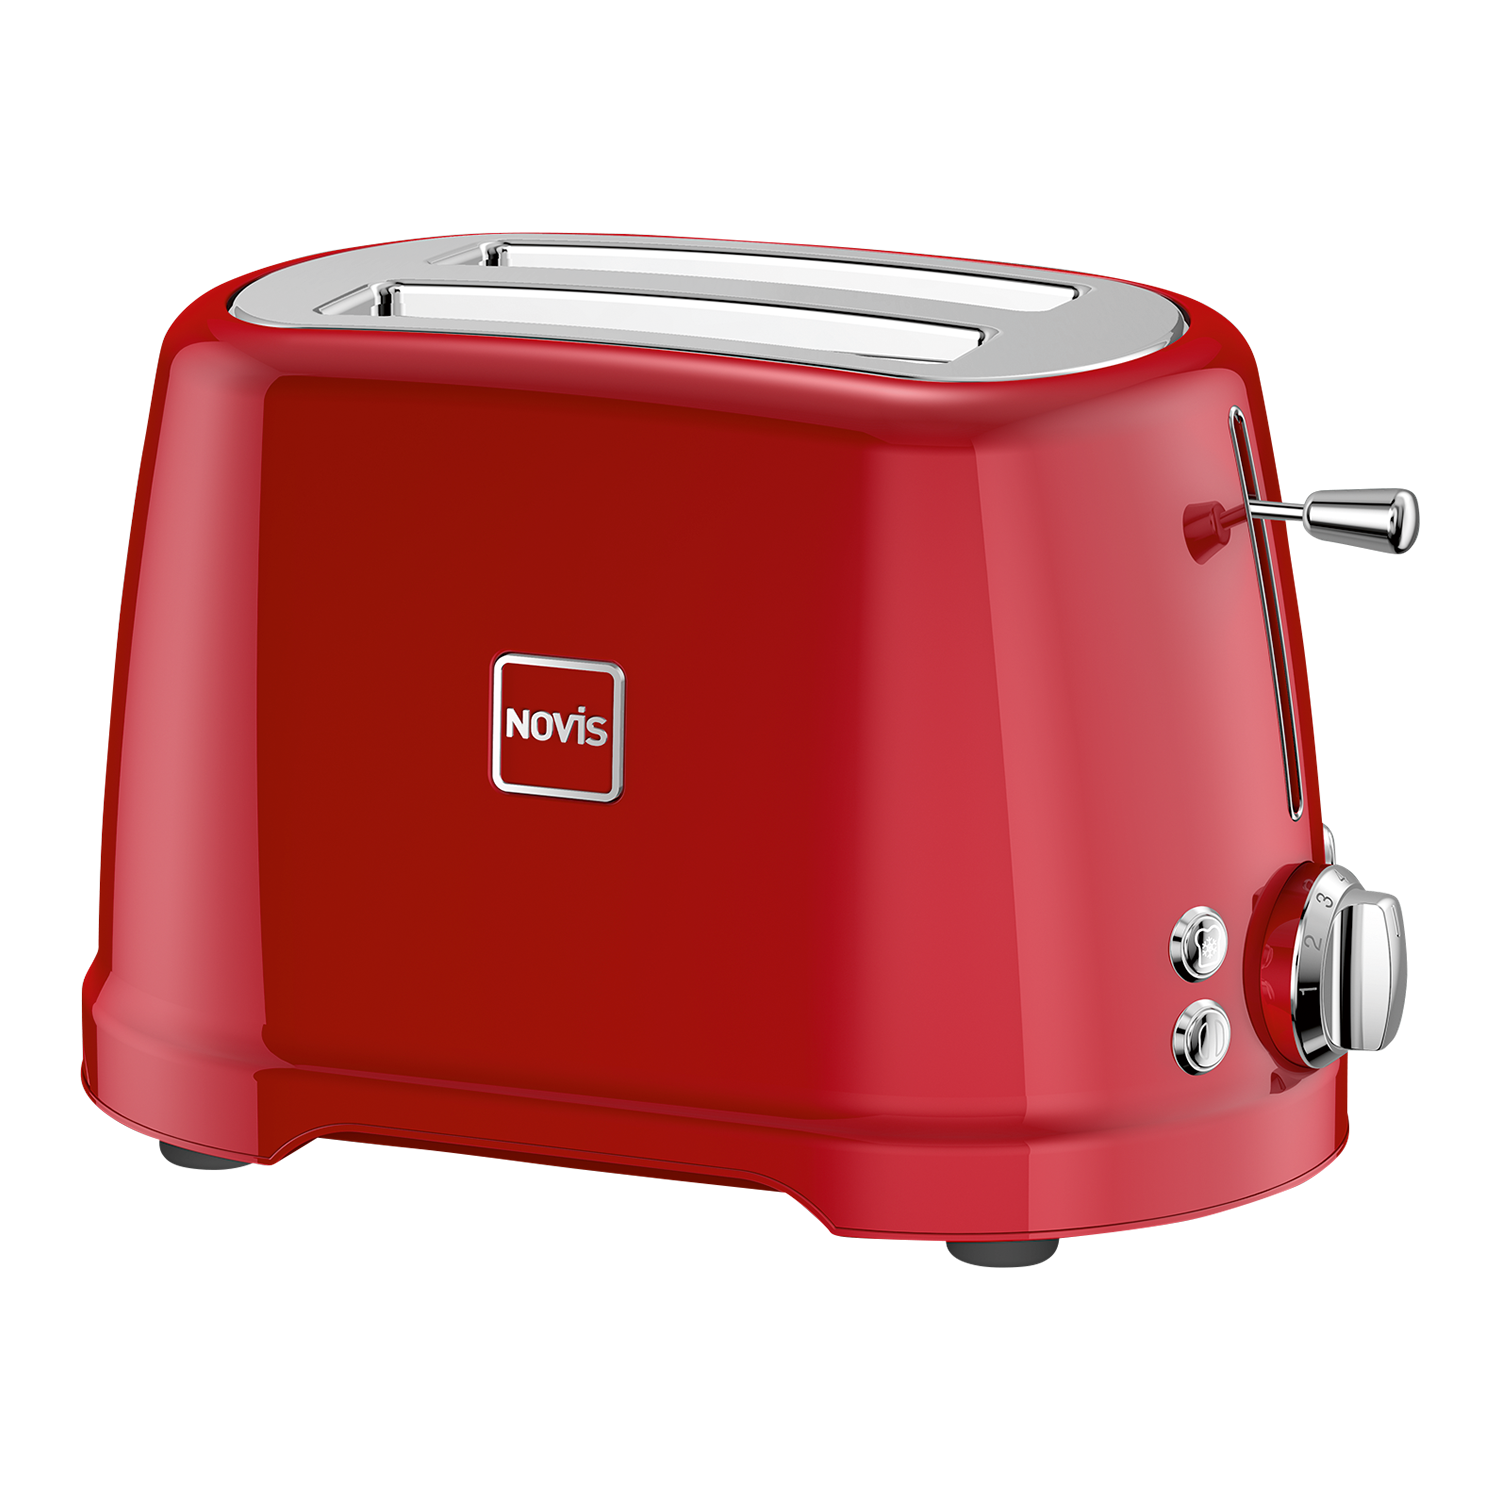 Novis Iconic Line T2 Toaster, Rot